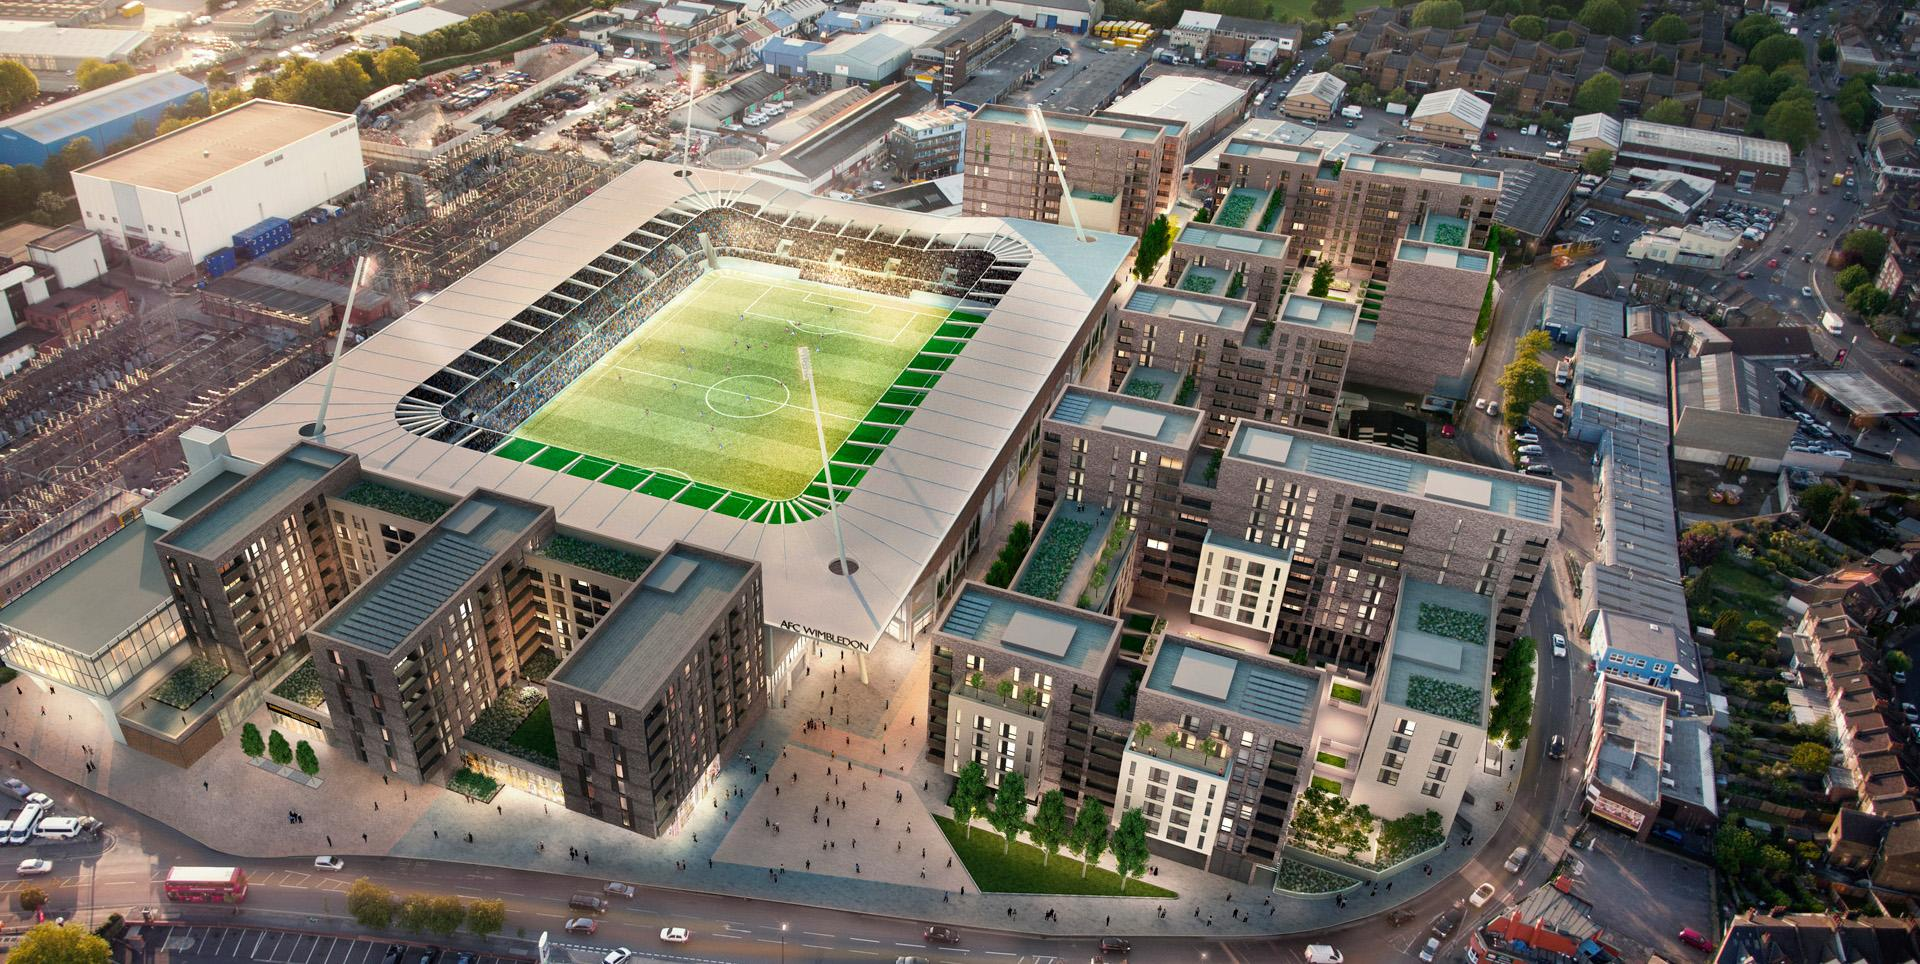 Wimbledon Grounds, Stadia Three, Galliard Homes, Catalyst Housing